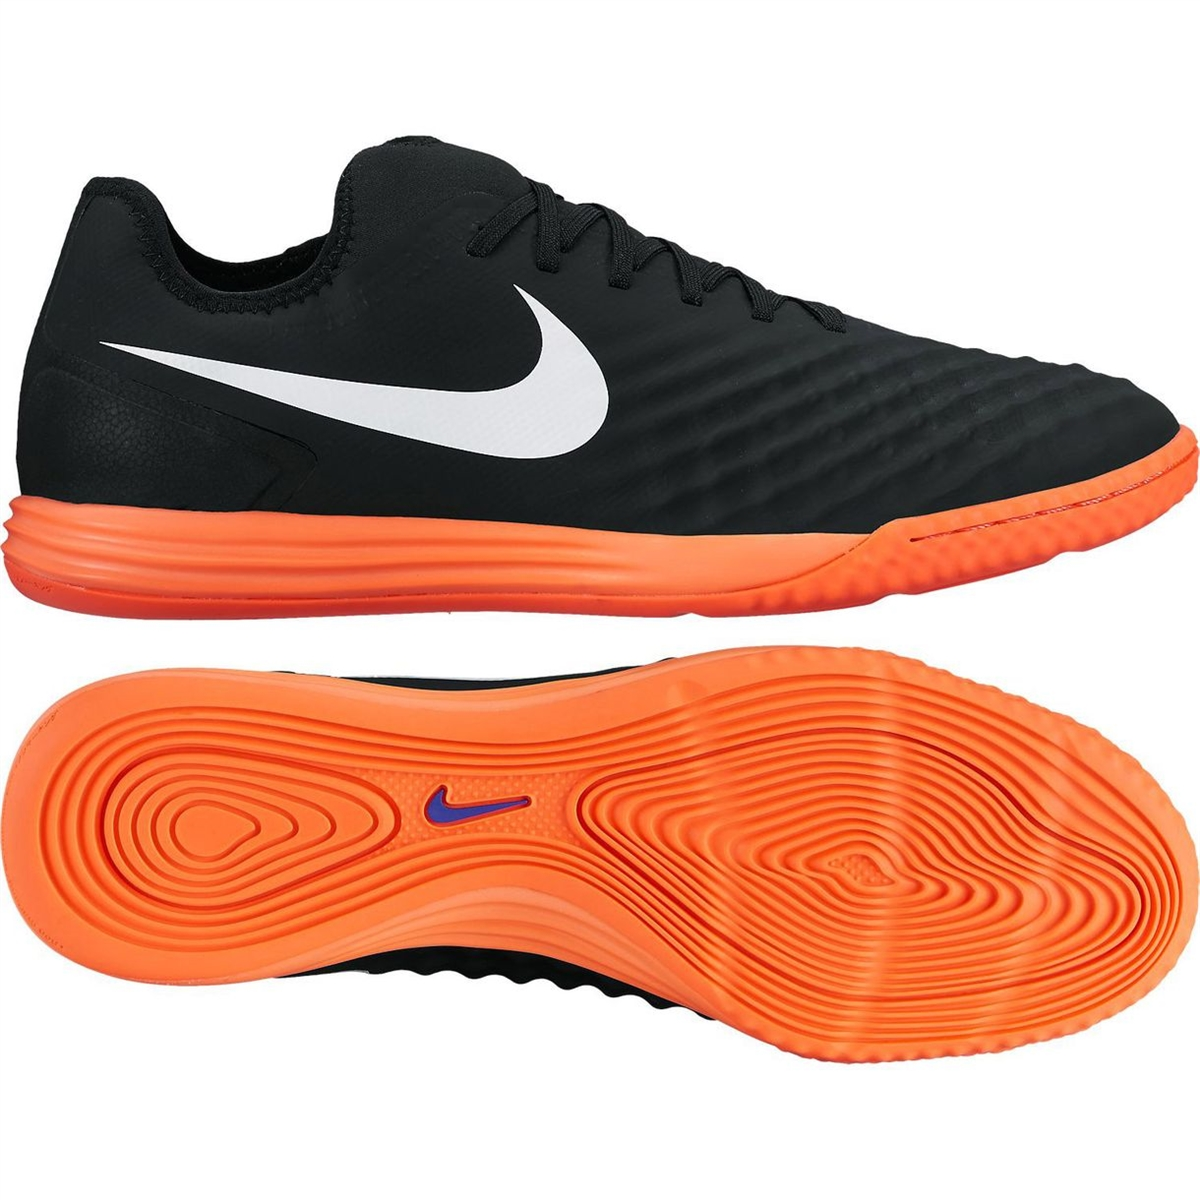 competitive price 686e1 d9b77 Nike MagistaX Finale II IC Indoor Soccer Shoes (Black White Hyper Orange Paramount  Blue)   Nike Indoor Soccer Shoes   844444-019   FREE SHIPPING ...